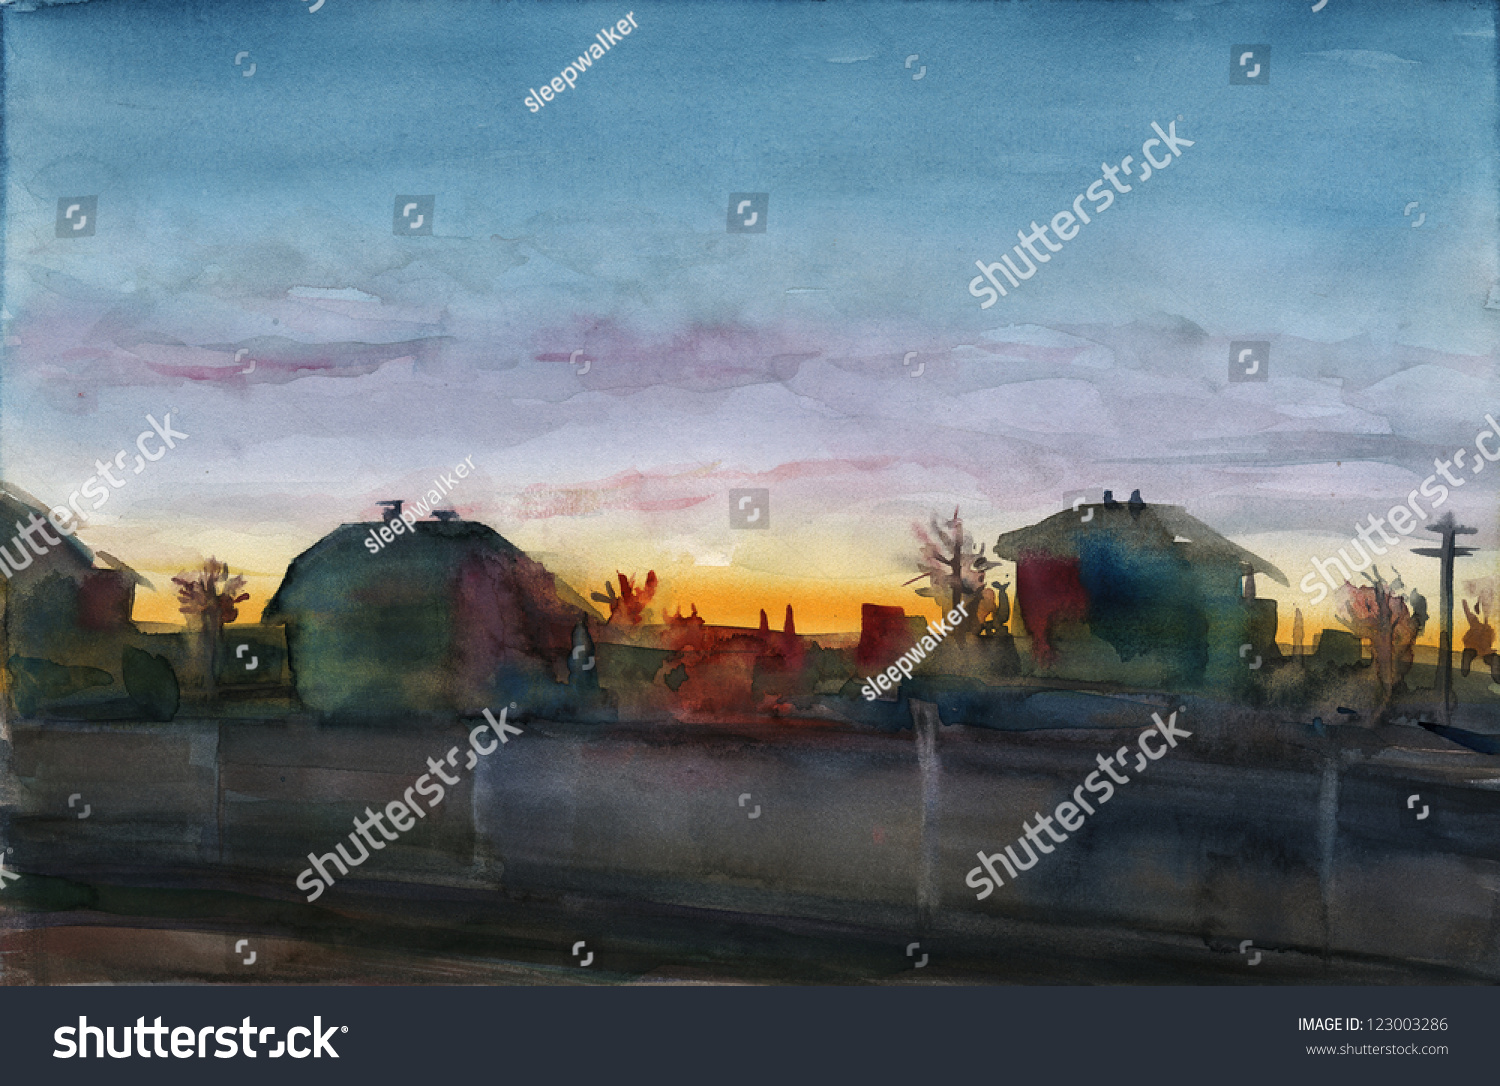 City Sunset Watercolor Painting Evening Landscape Urban Street